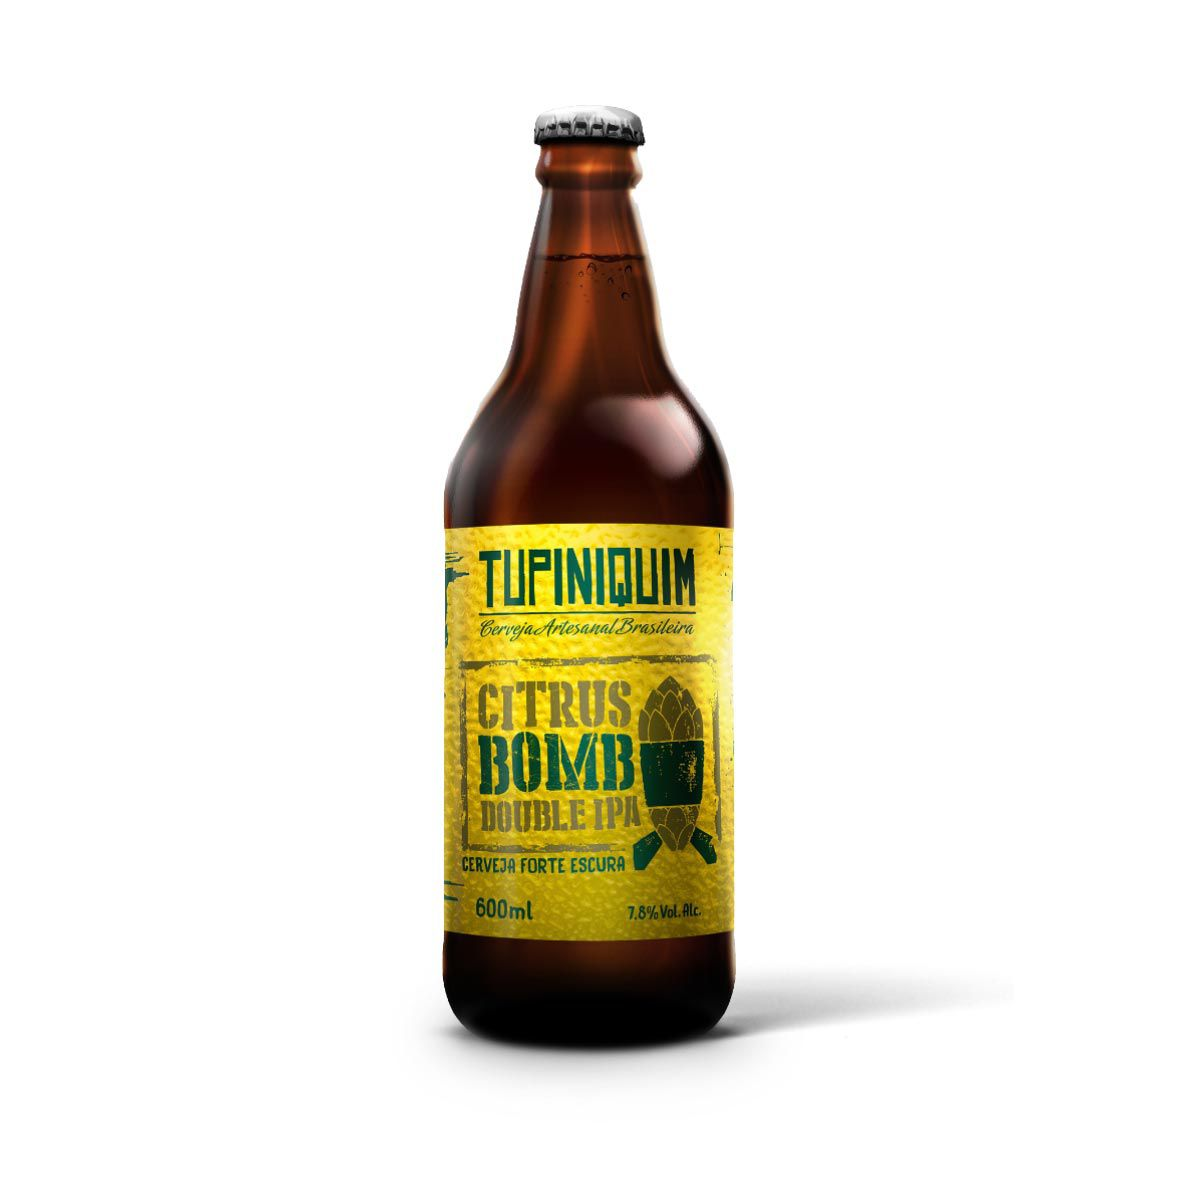 Tupiniquim Citrus Bomb Double IPA 600ml